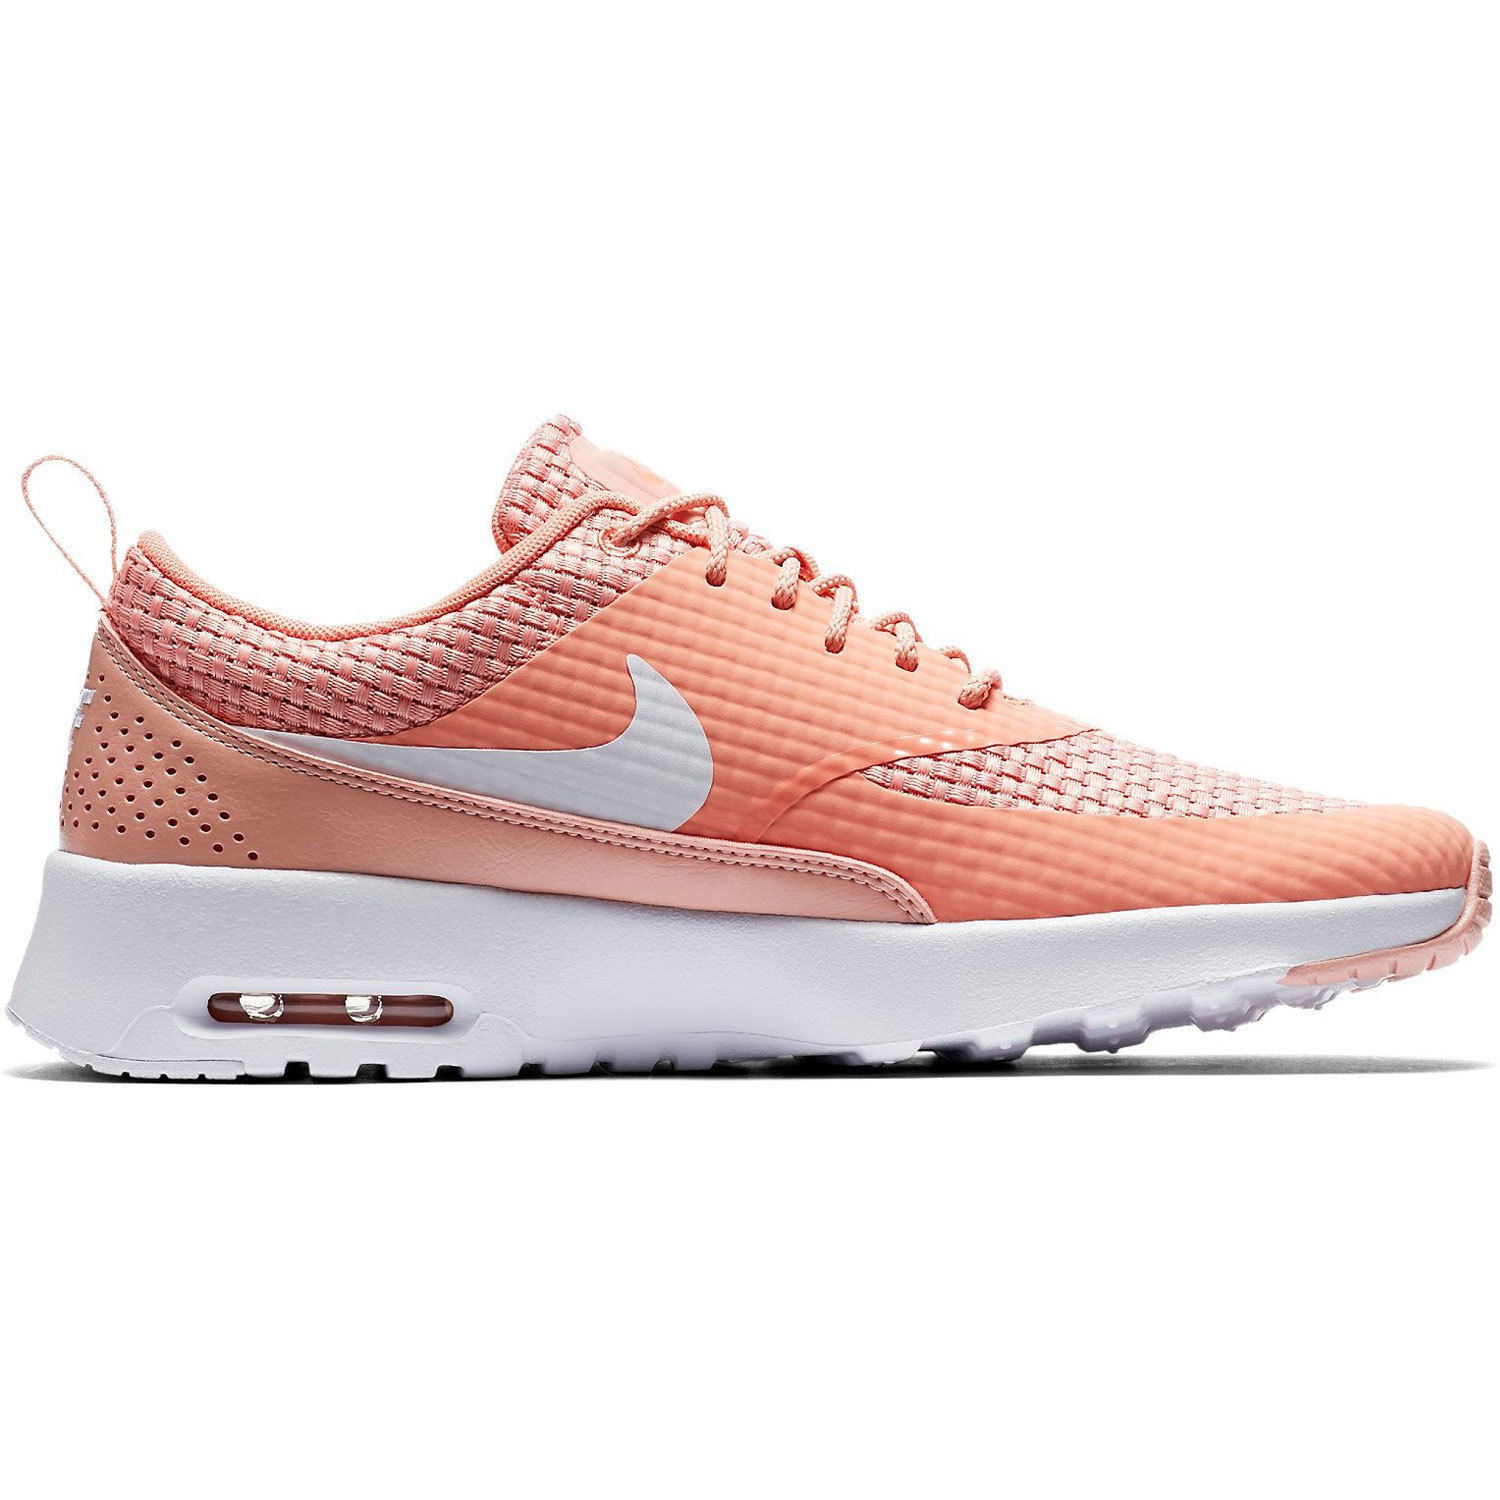 purchase 55f10 75ed3 item 4 1 new nike gs air max 1 4 ultra se Chaussures 691349